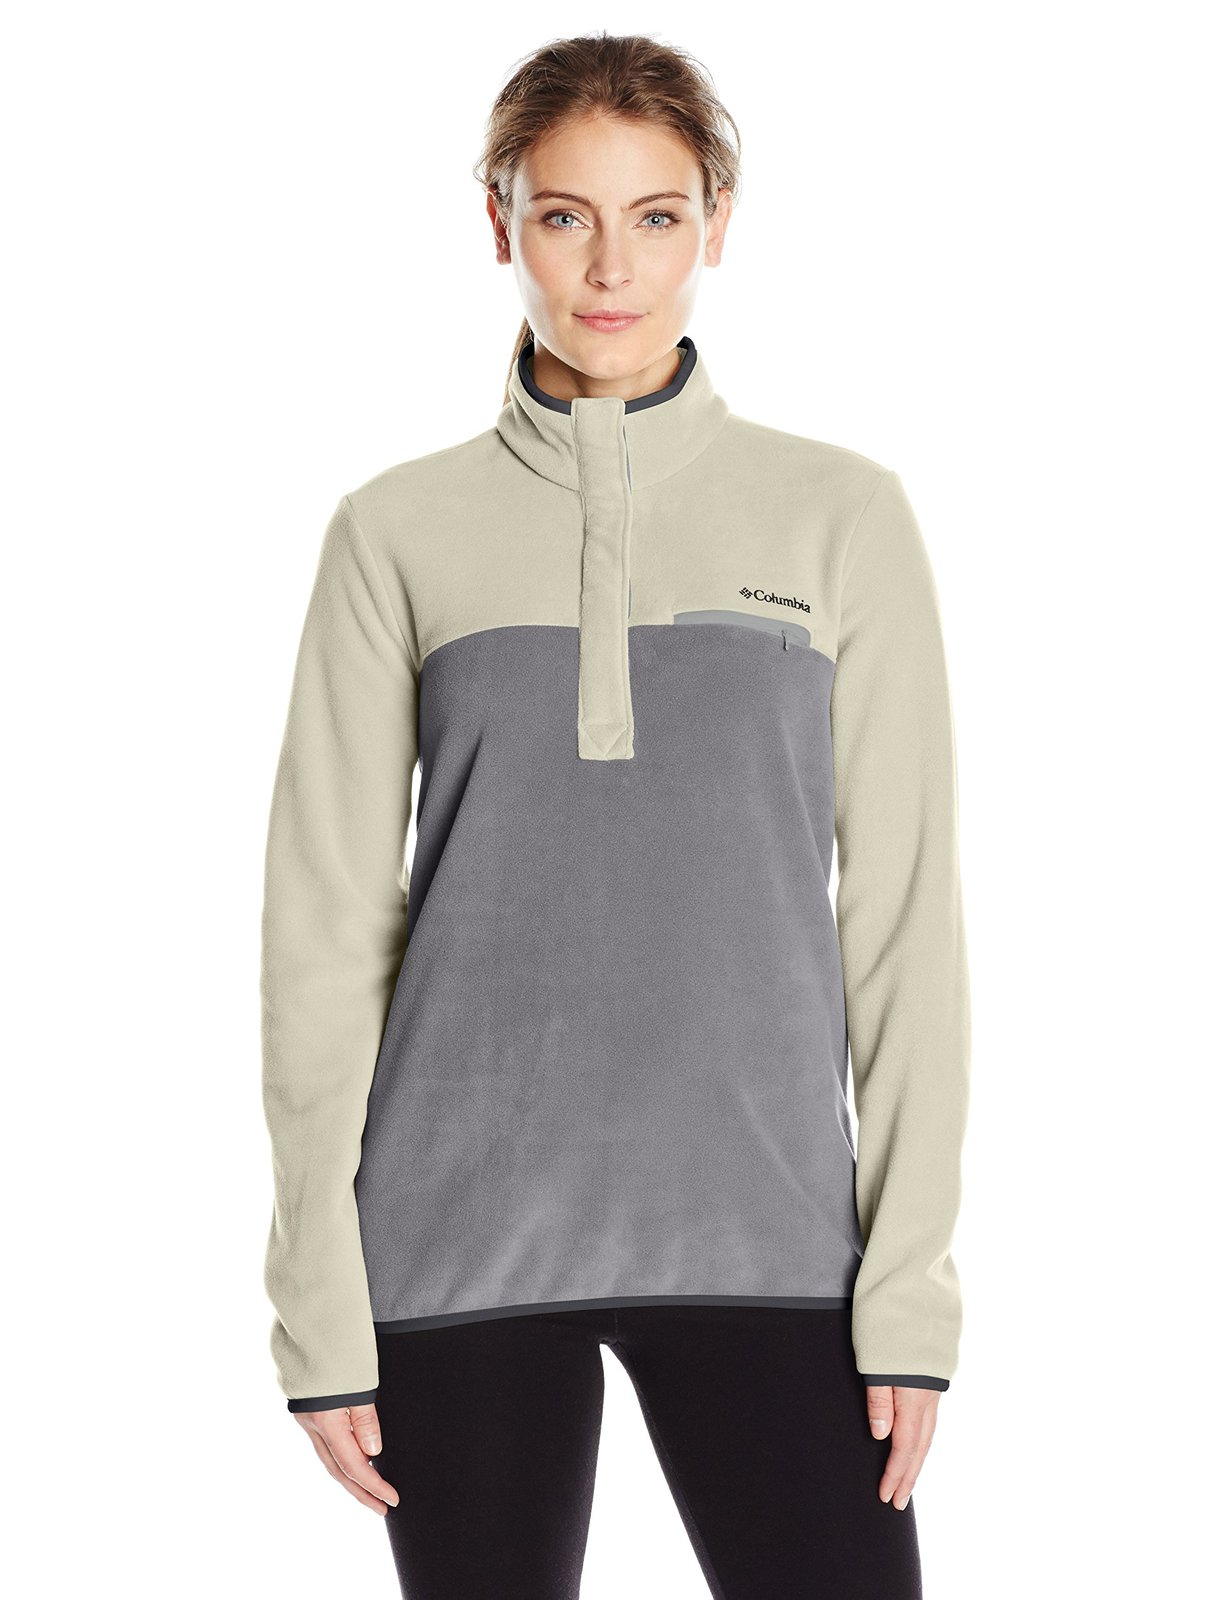 Columbia Women's Mountain Side Pullover, Chalk Columbia Grey, Medium